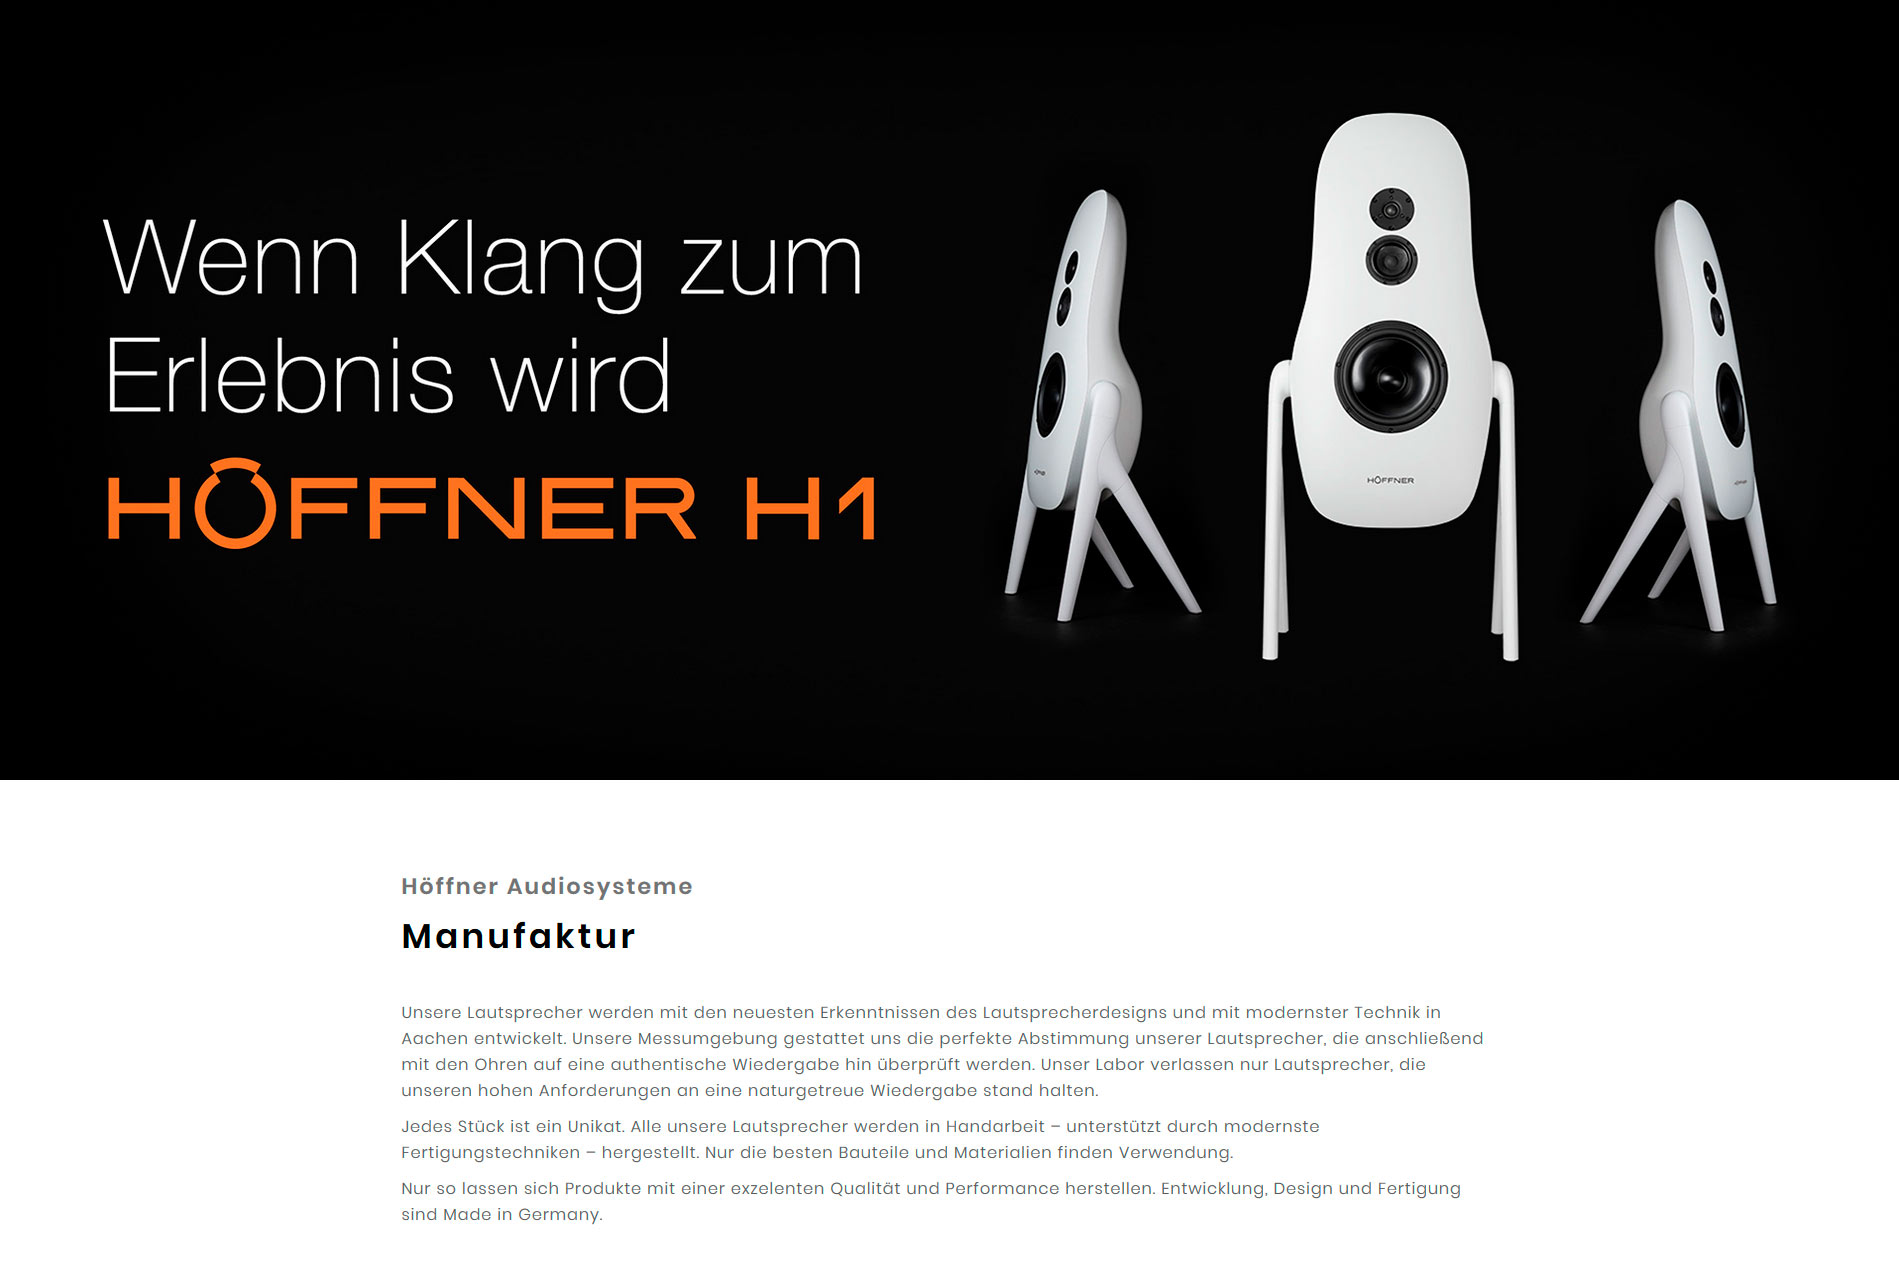 h ffner audiosysteme mit neuer seite online h ffner audiosysteme manufaktur. Black Bedroom Furniture Sets. Home Design Ideas